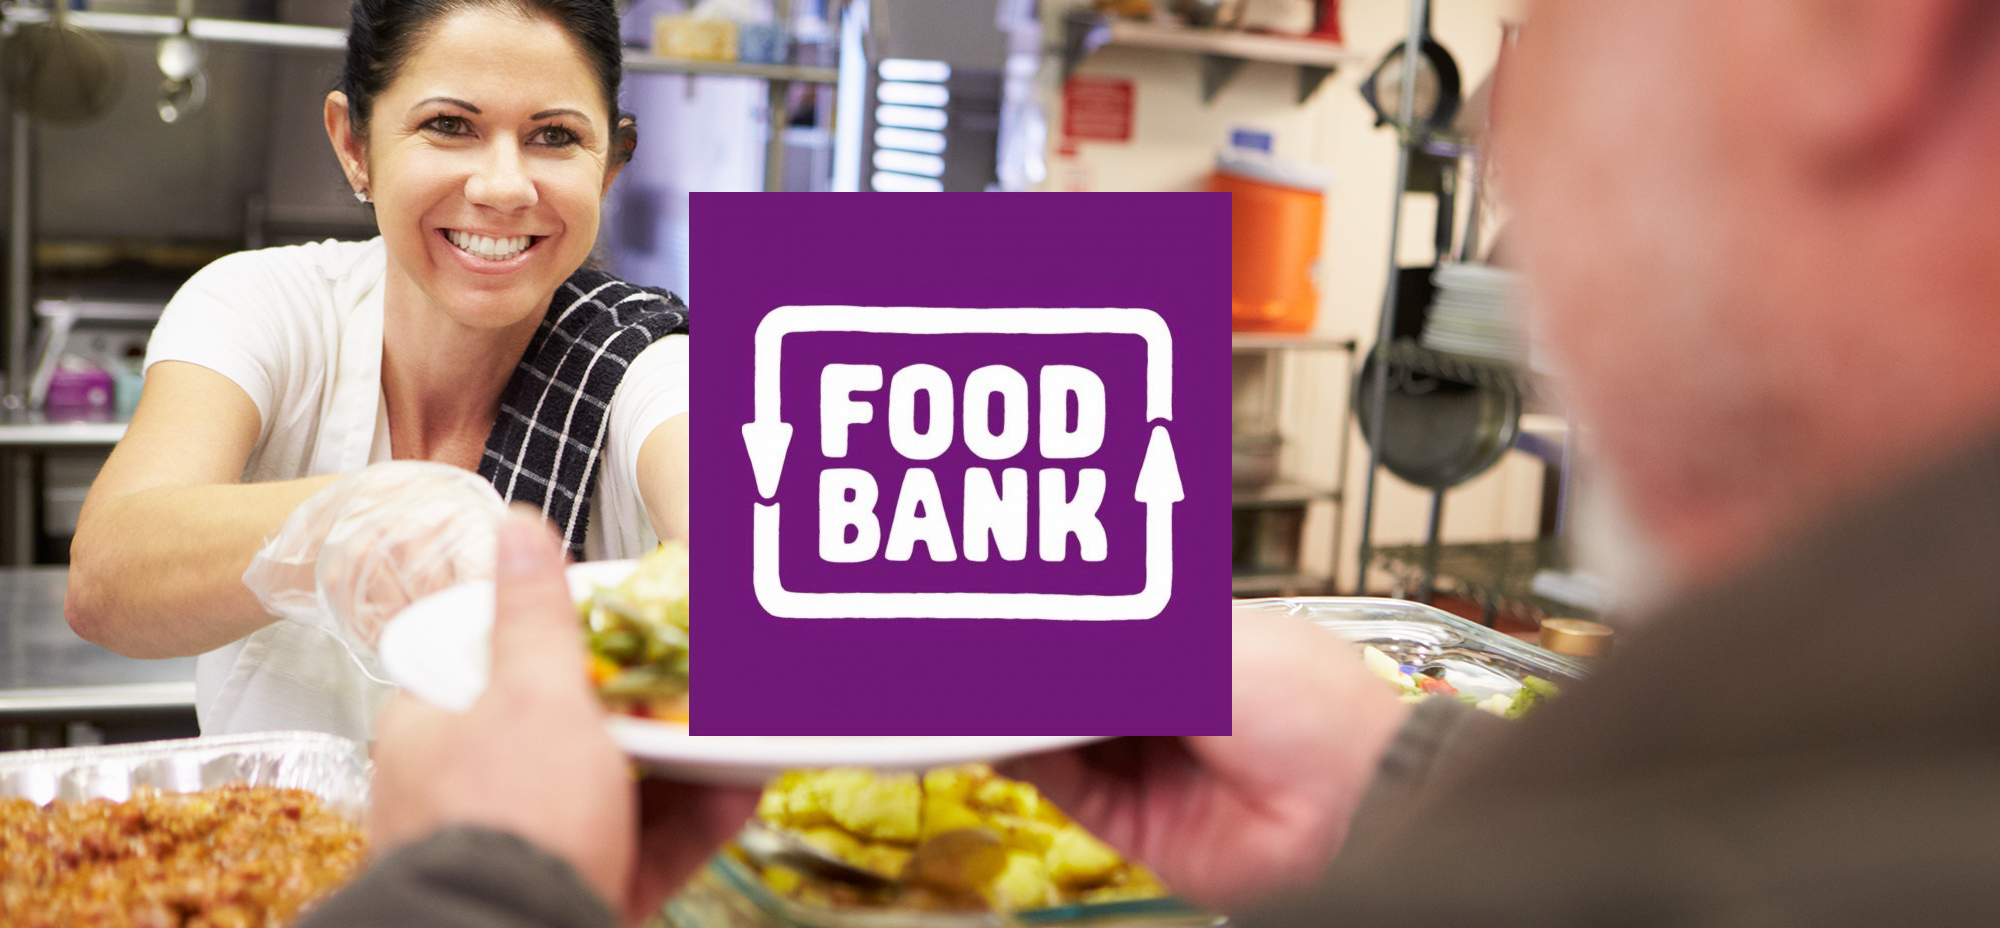 Photo is of the Food Bank organisation logo